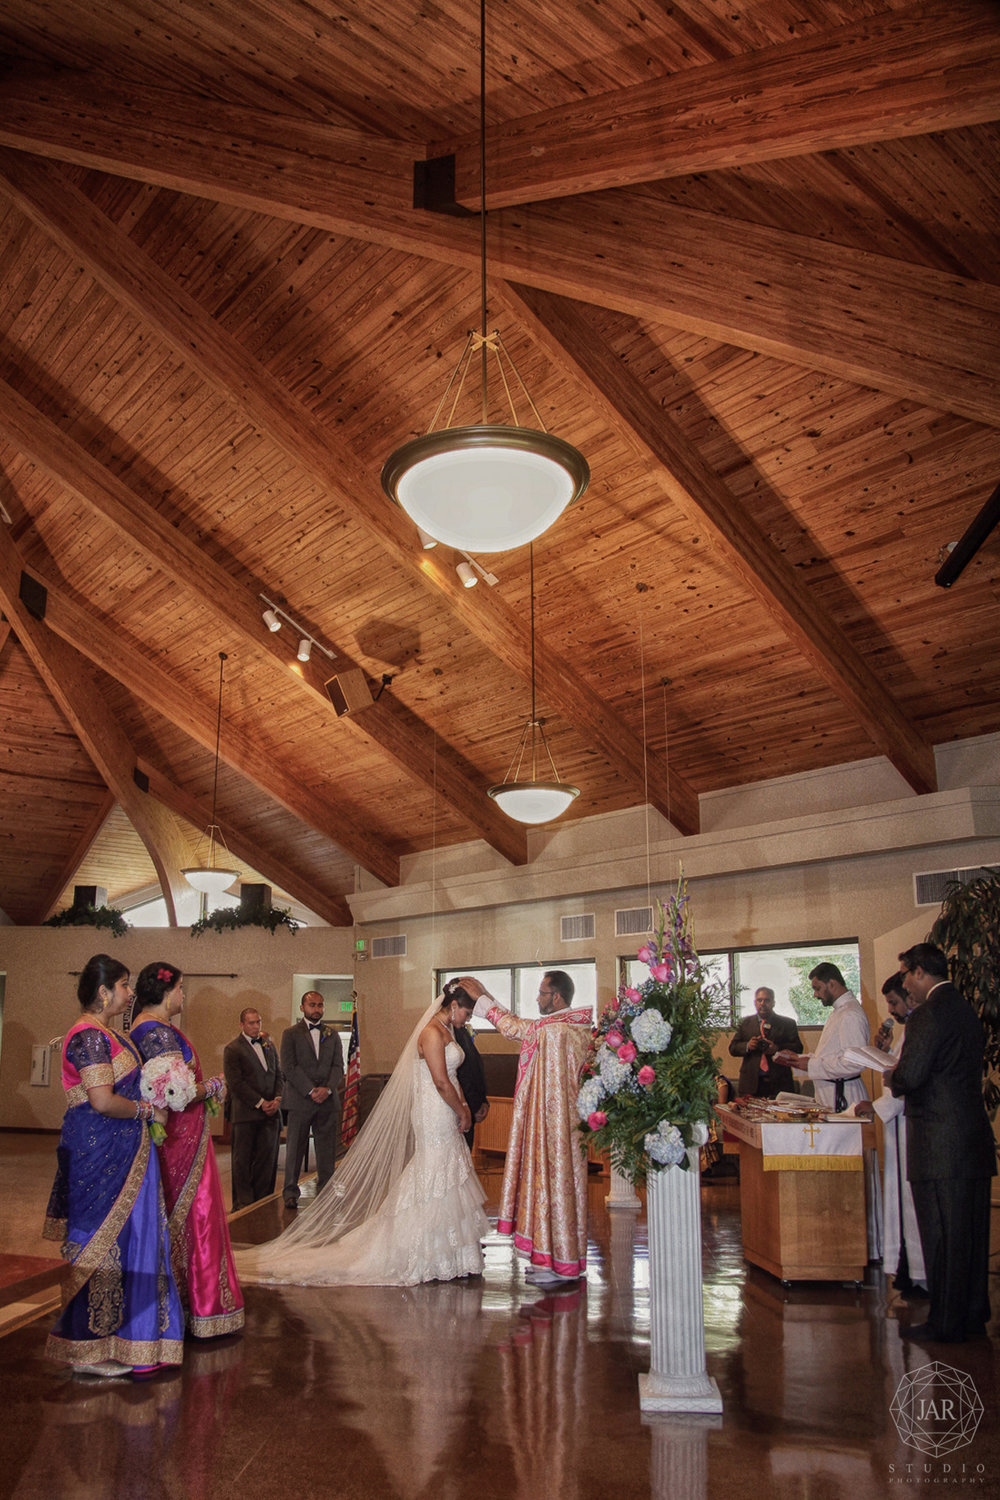 13-gorgeous-indian-christian-wedding-church-high-ceiling-orlando-jarstudio-photography.JPG